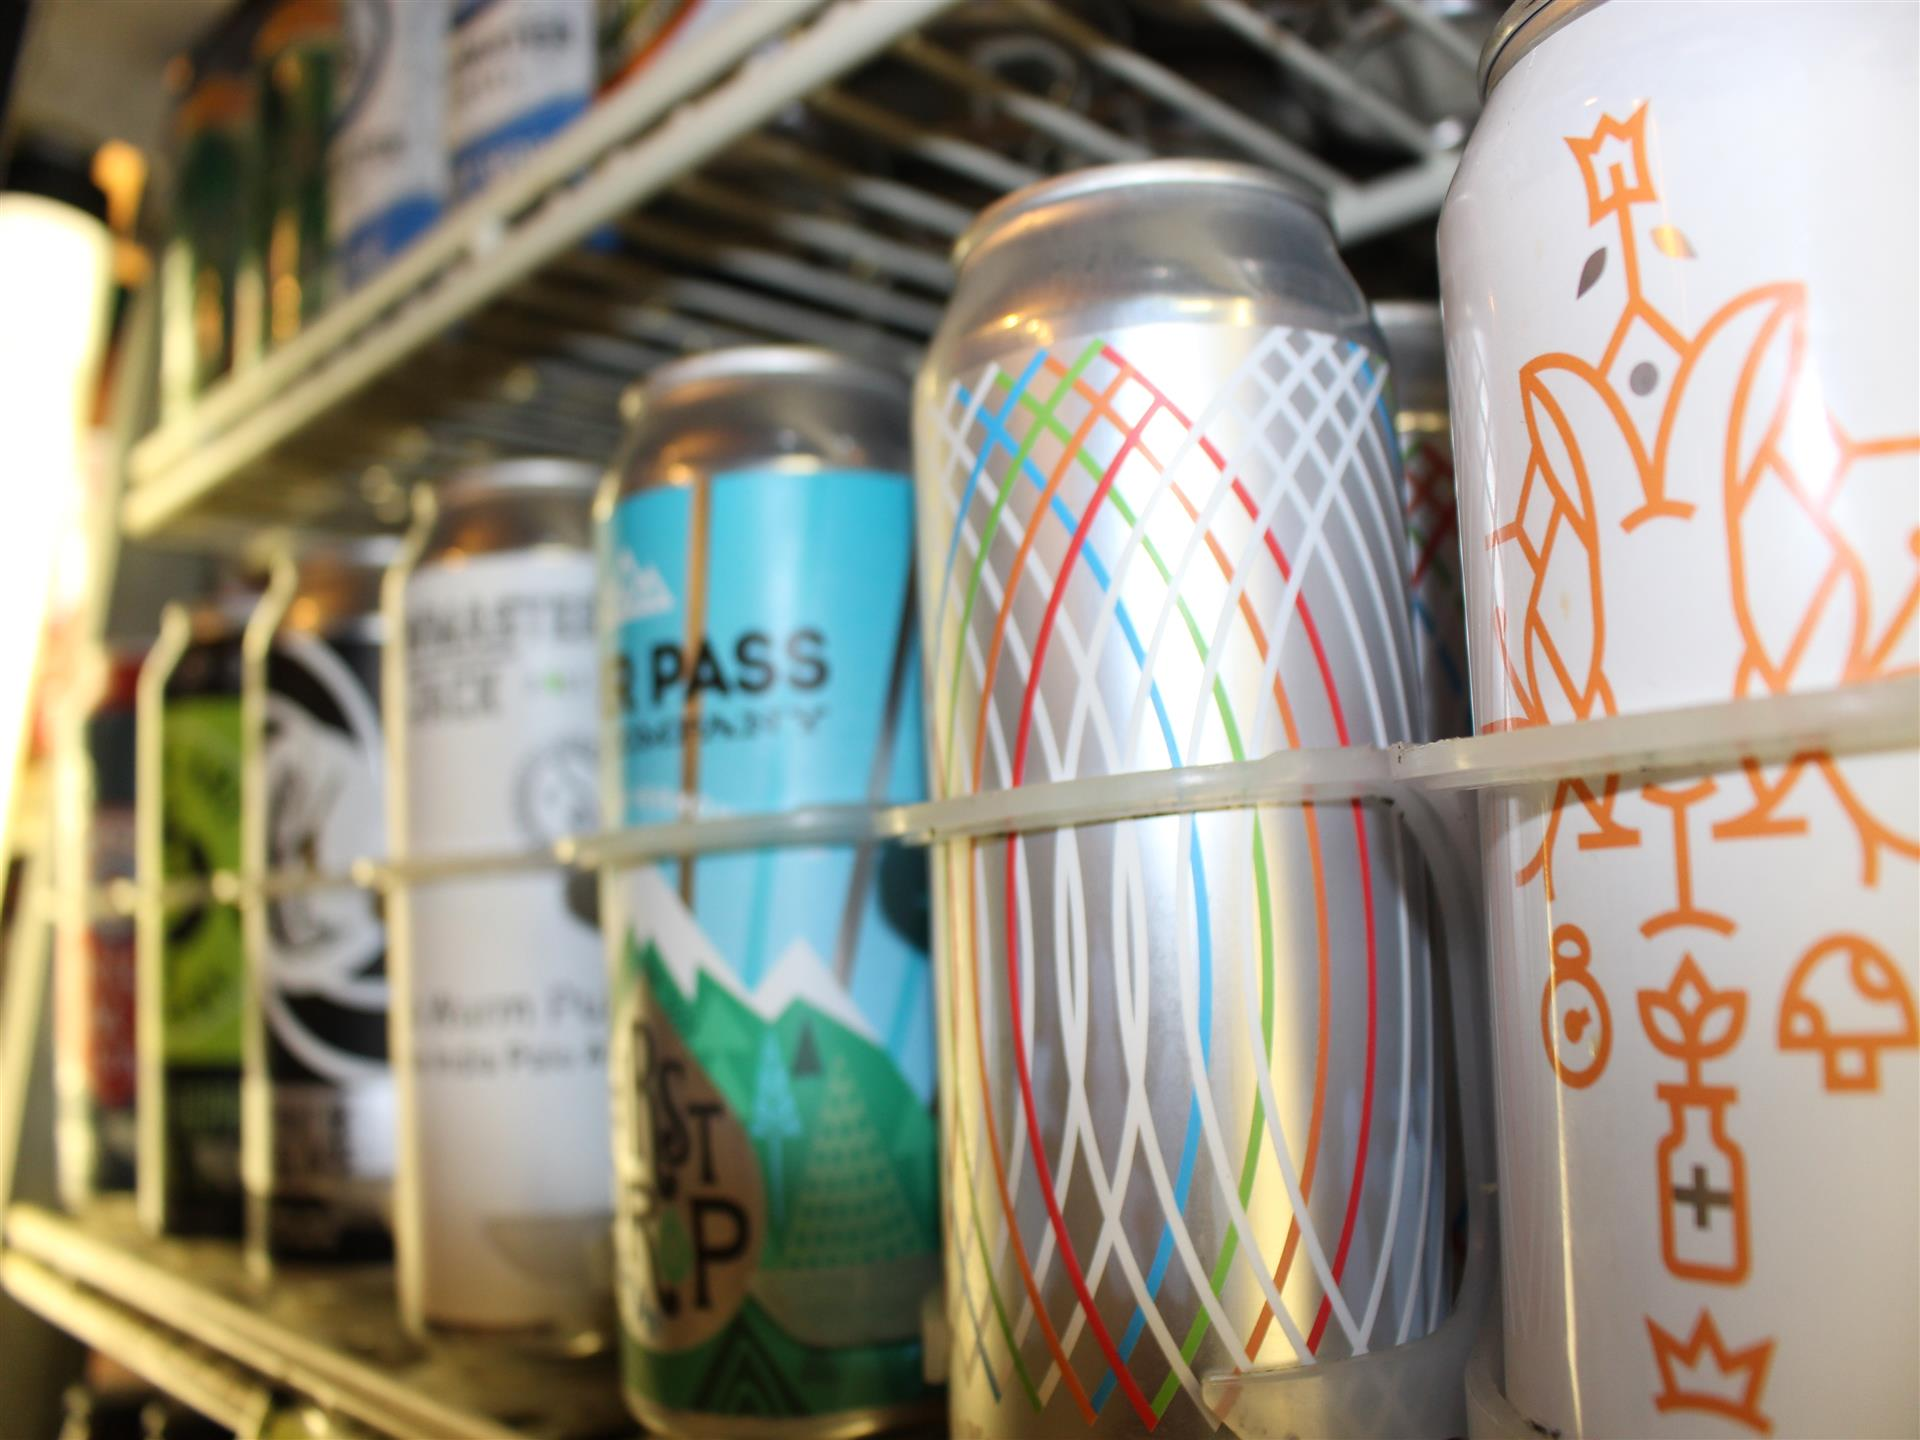 cans of various beer